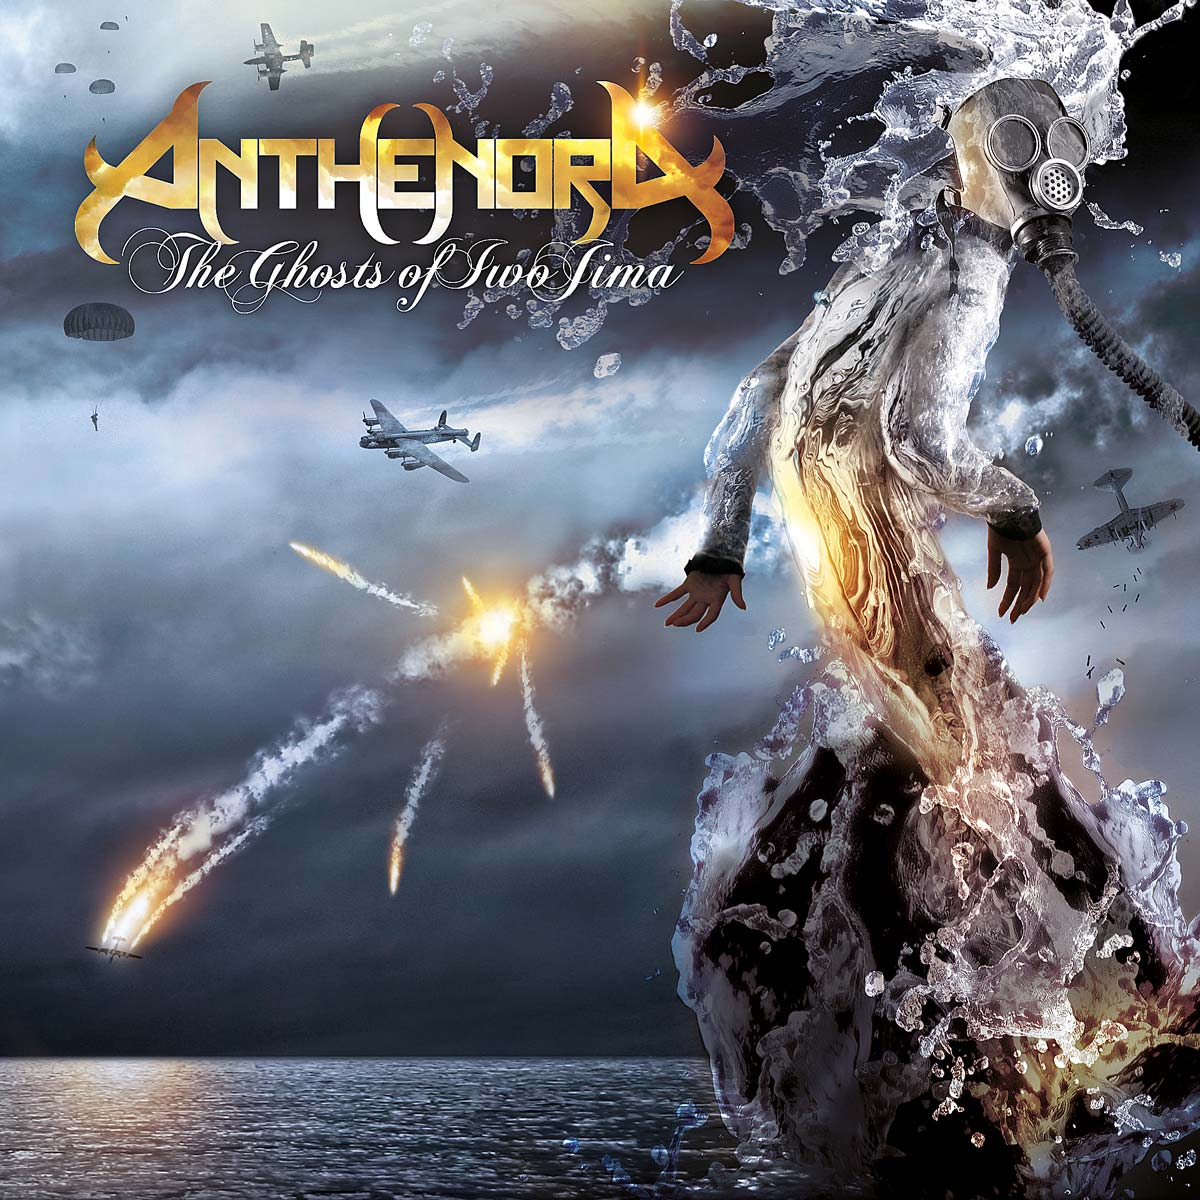 Artwork AnthenoraGhost cover - Anthenora, The Ghosts of Iwo Jima